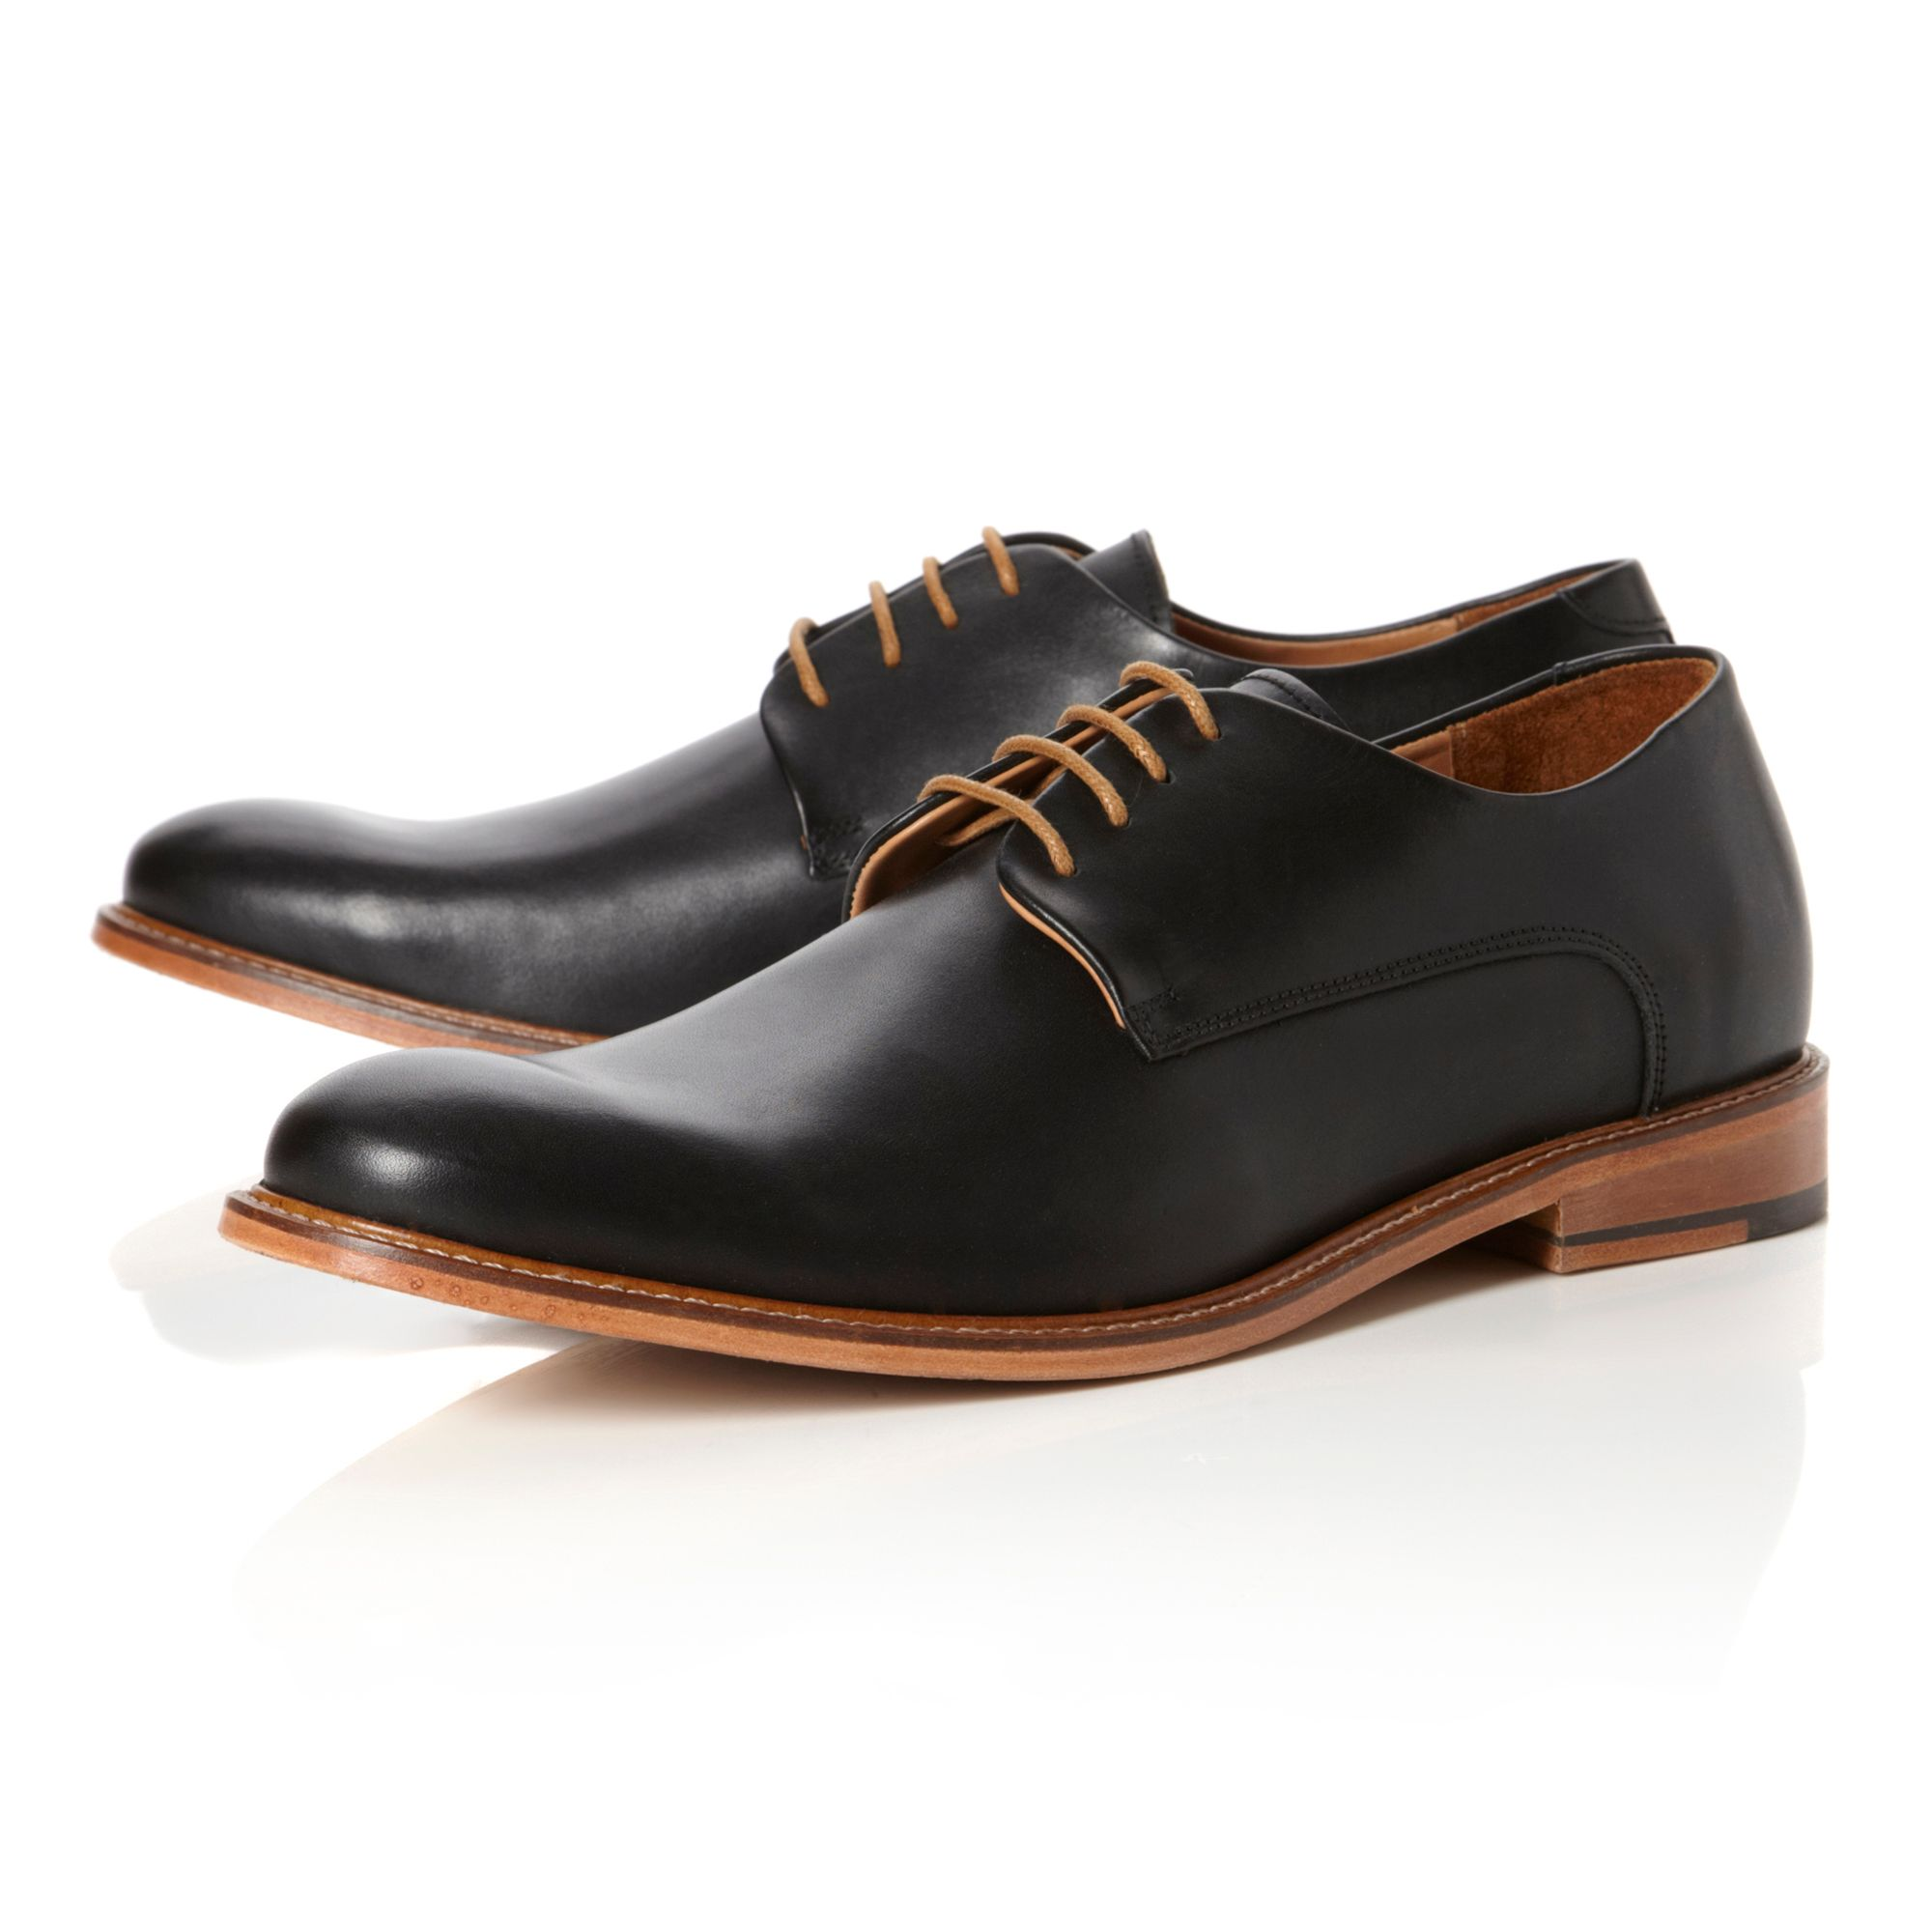 Irron classic leather lace up derby shoes